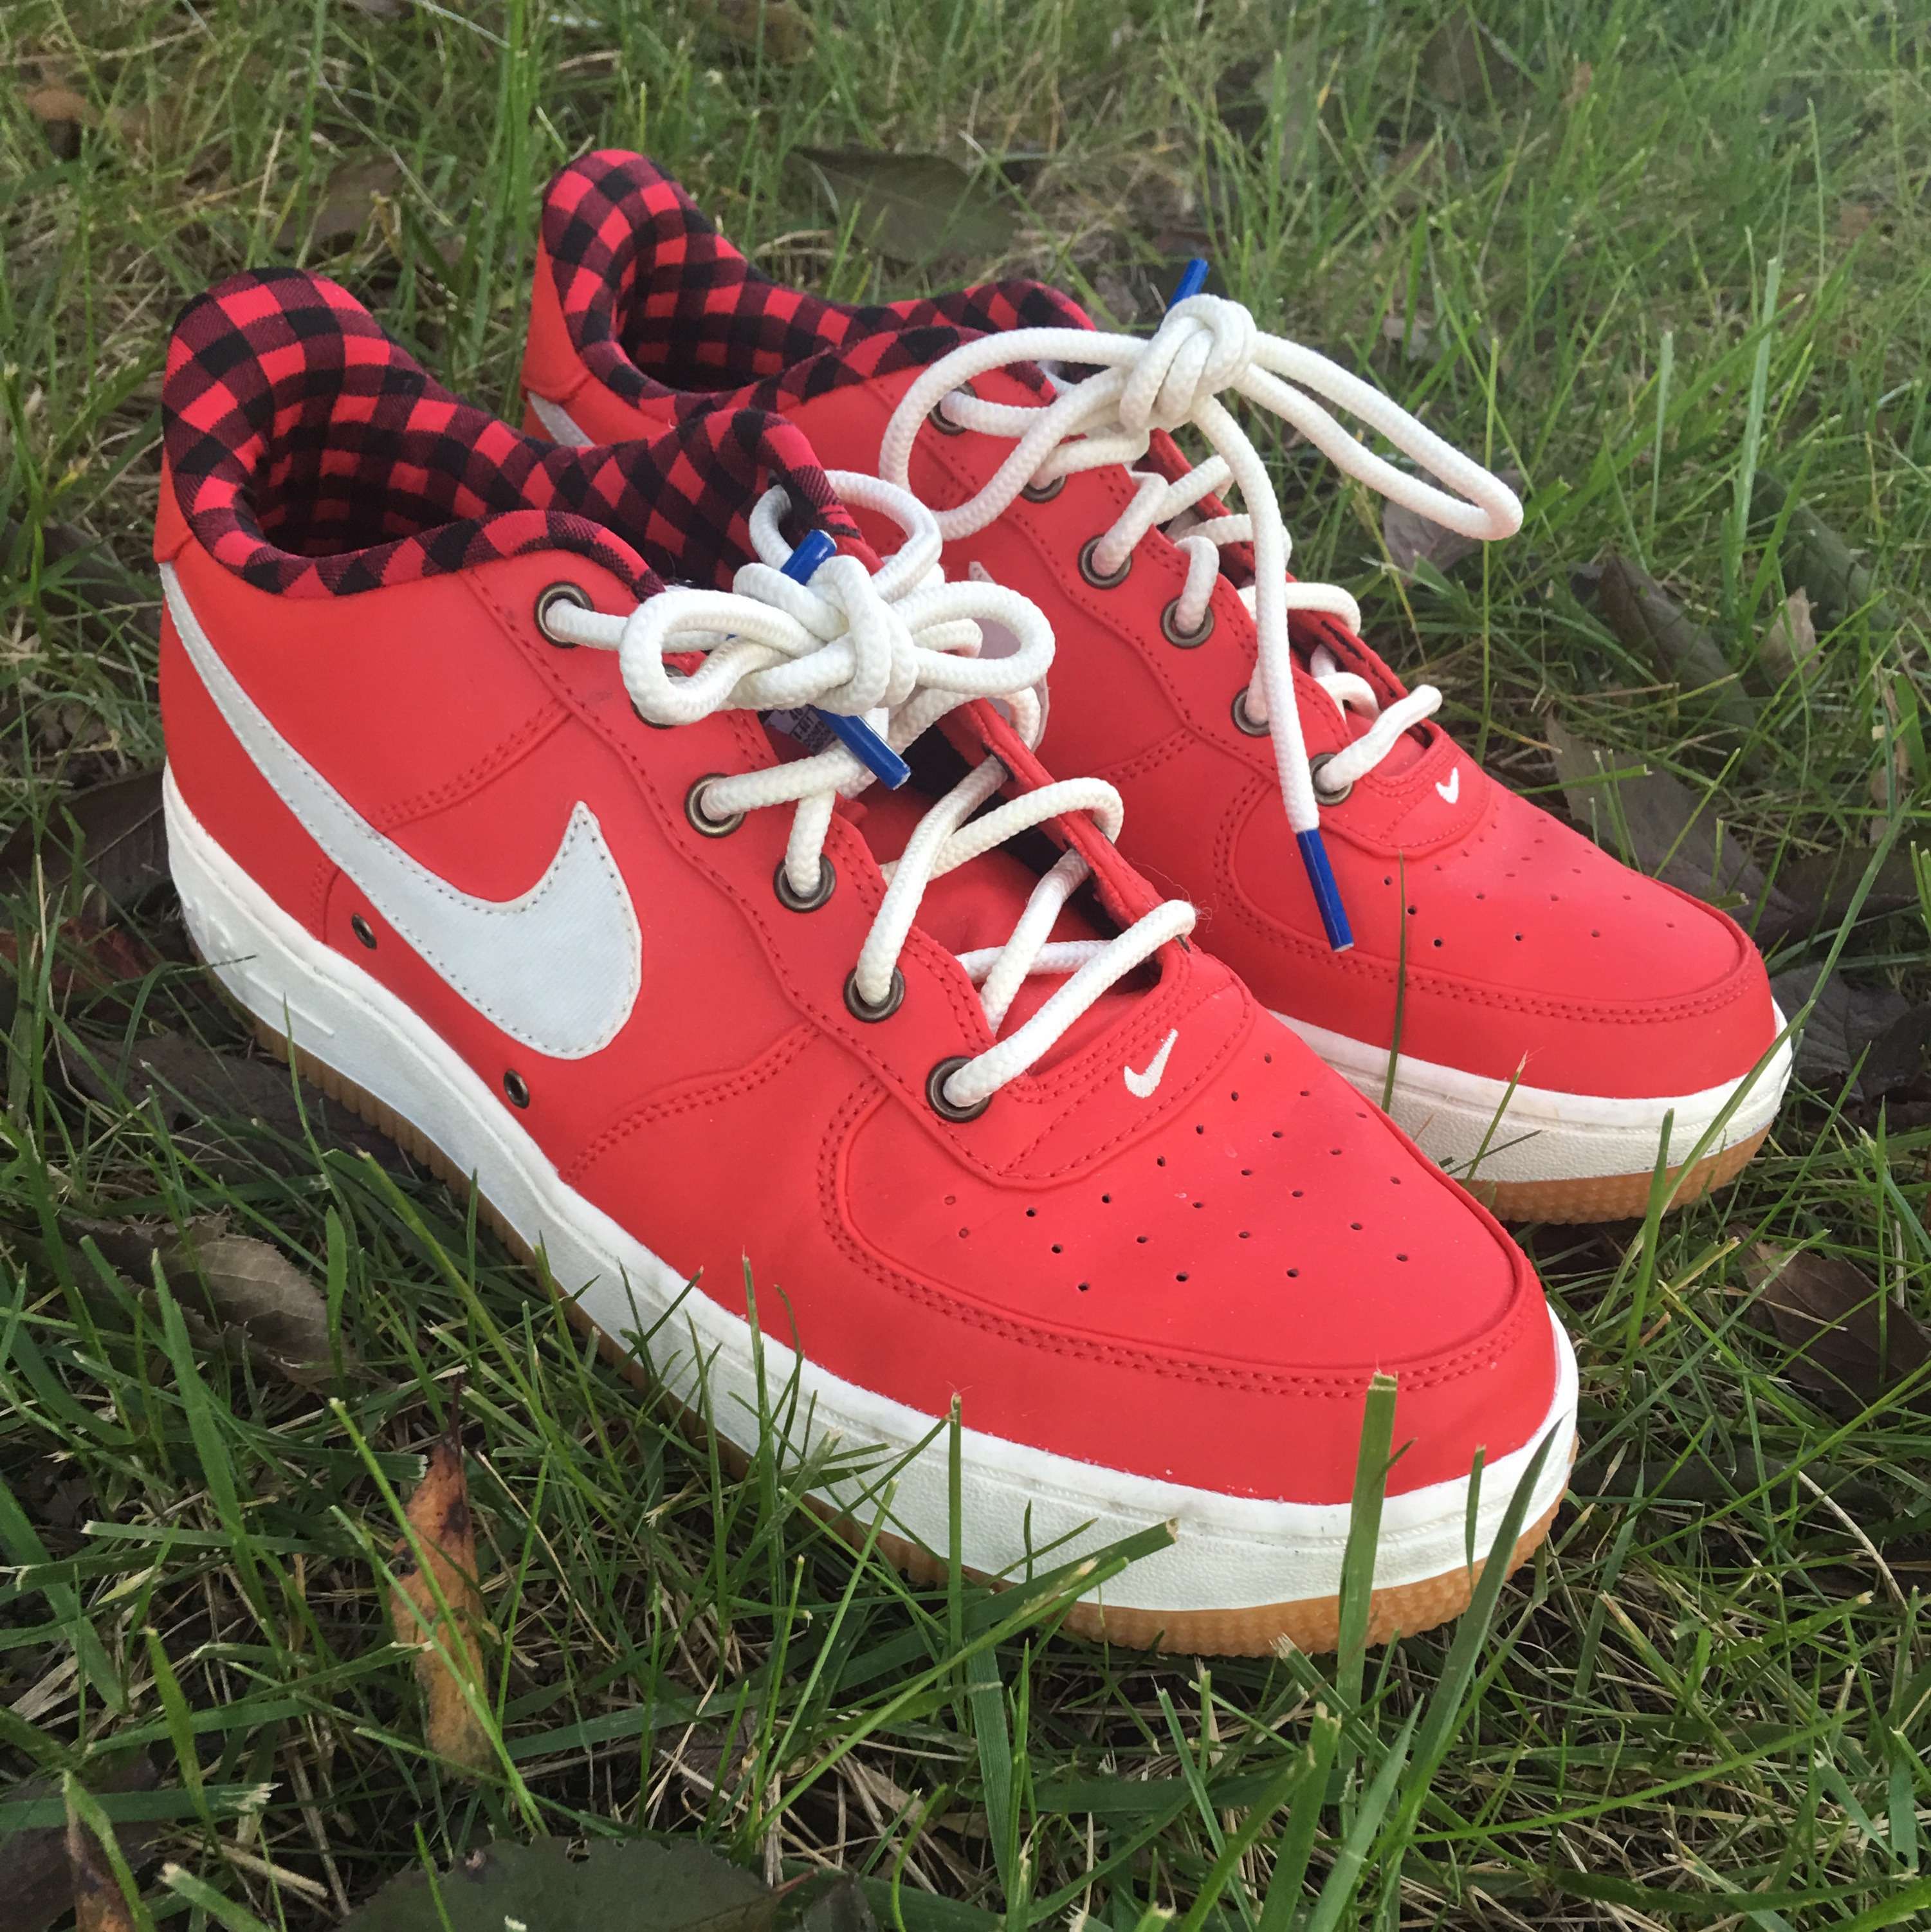 Limited Edition red Nike airforce 1